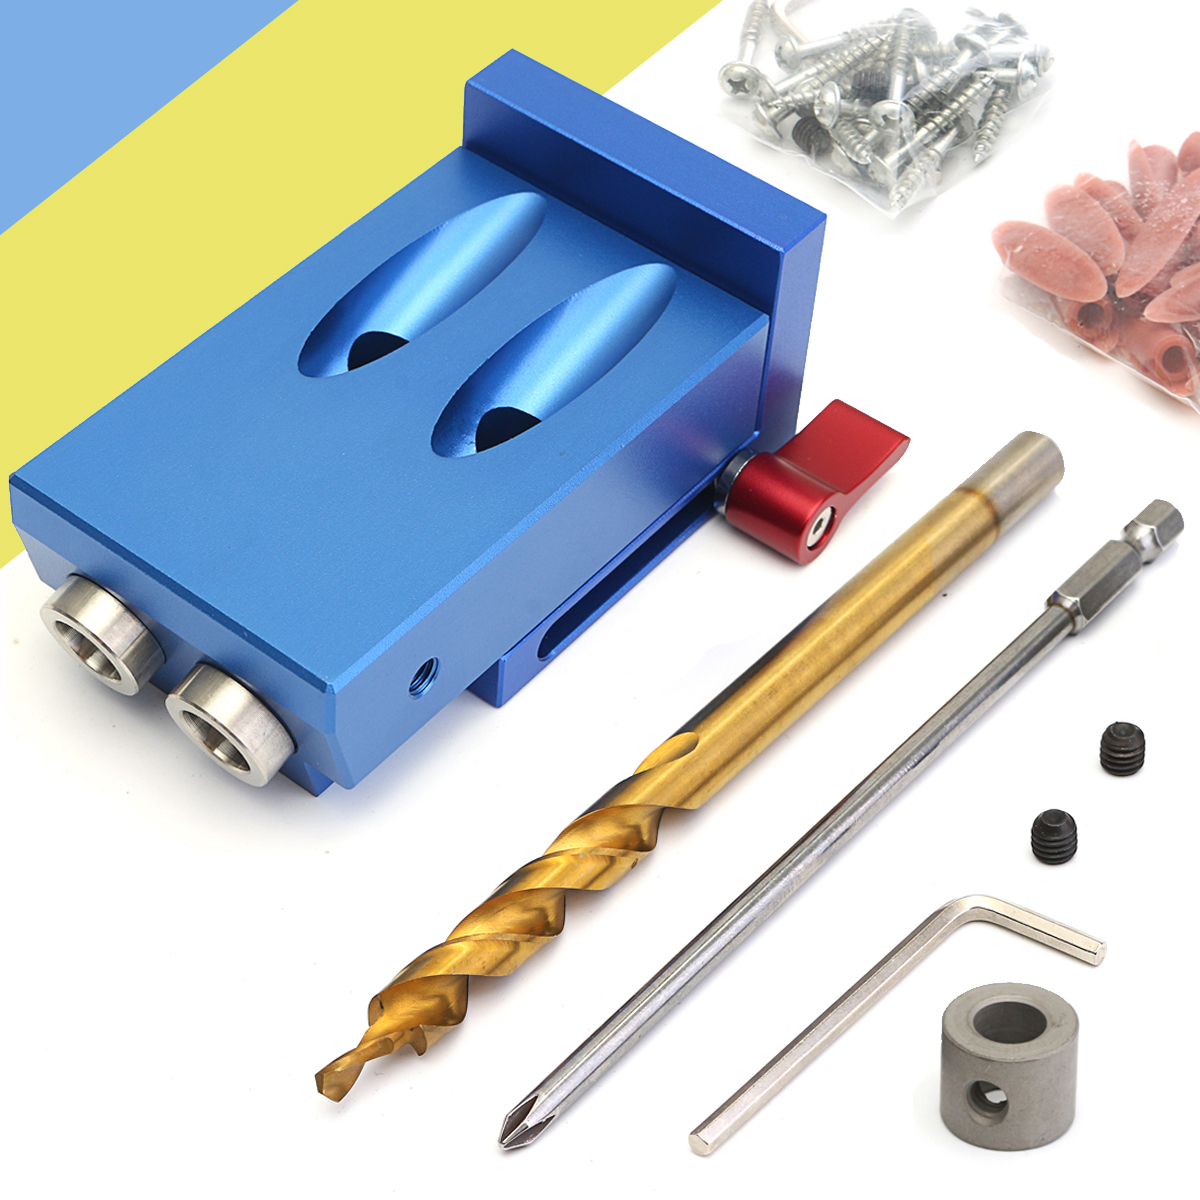 Pocket Hole Jig Kit With Step Drill Bit Woodworking Cutter Tool 9.5mm Step Drill Bit Stop Collar Manual Wood Drilling Hole Saw mayitr 30 300mm adjustable drill bit metal wood circle hole saw drill bit cutter kit diy tool new for woodworking